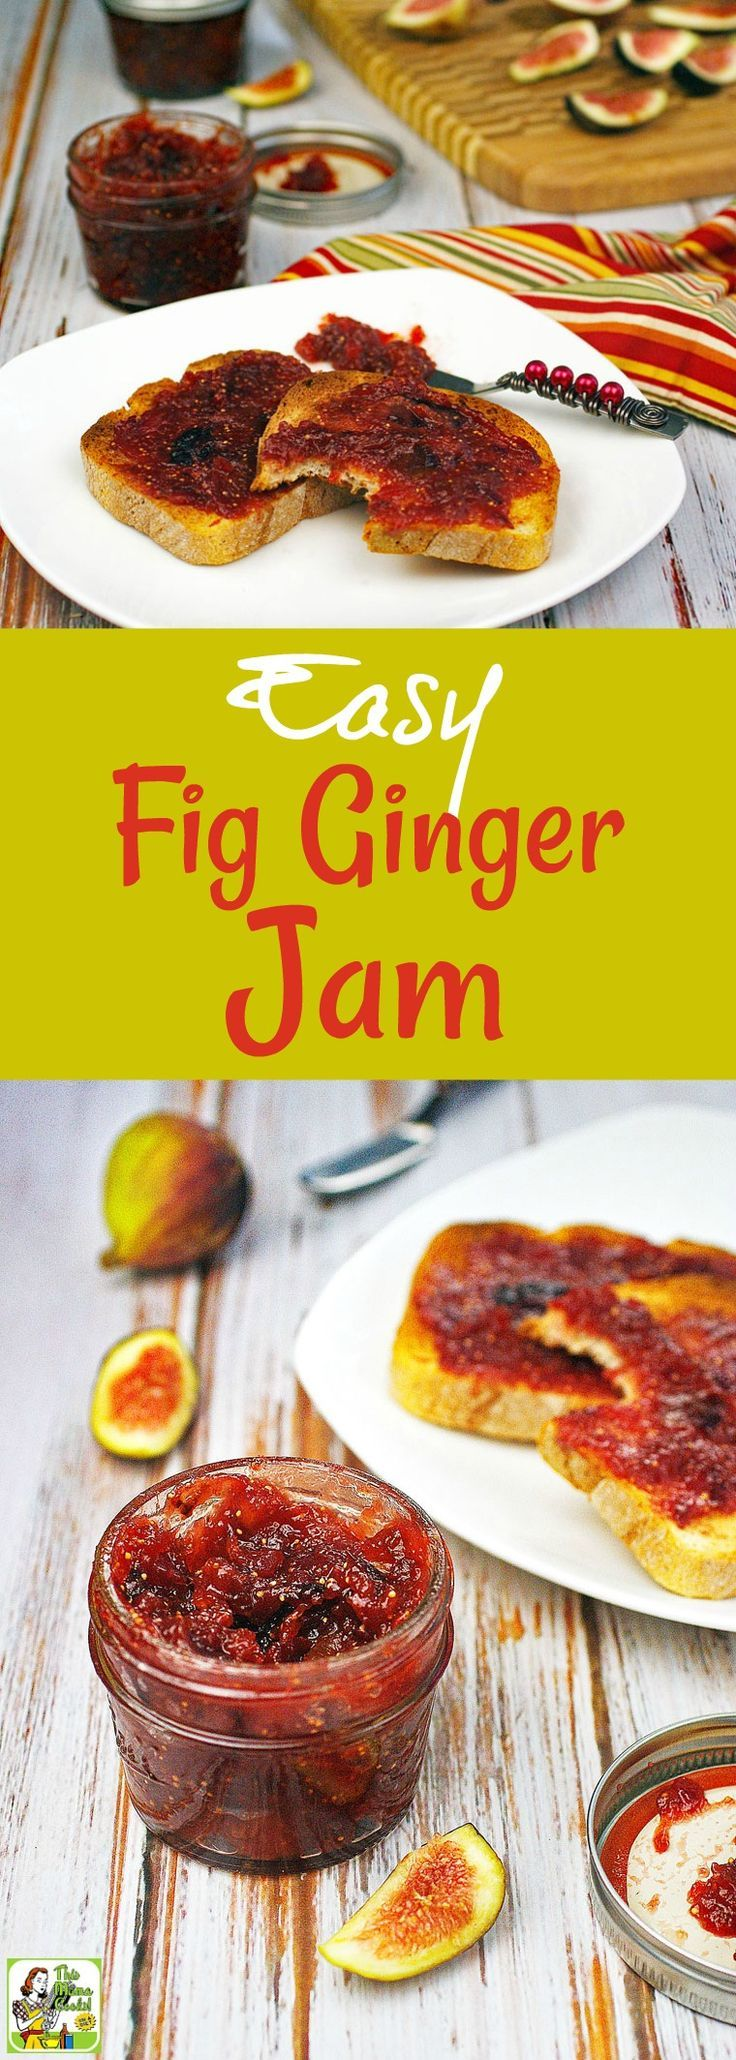 How to make an Easy Fig Ginger Jam recipe. This easy fresh fig jam recipe uses no pectin and can be kept in the refrigerator for up to two weeks. This healthy fig jam recipe uses monk fruit powder to make it a reduced sugar recipe. #recipes #healthy #jam